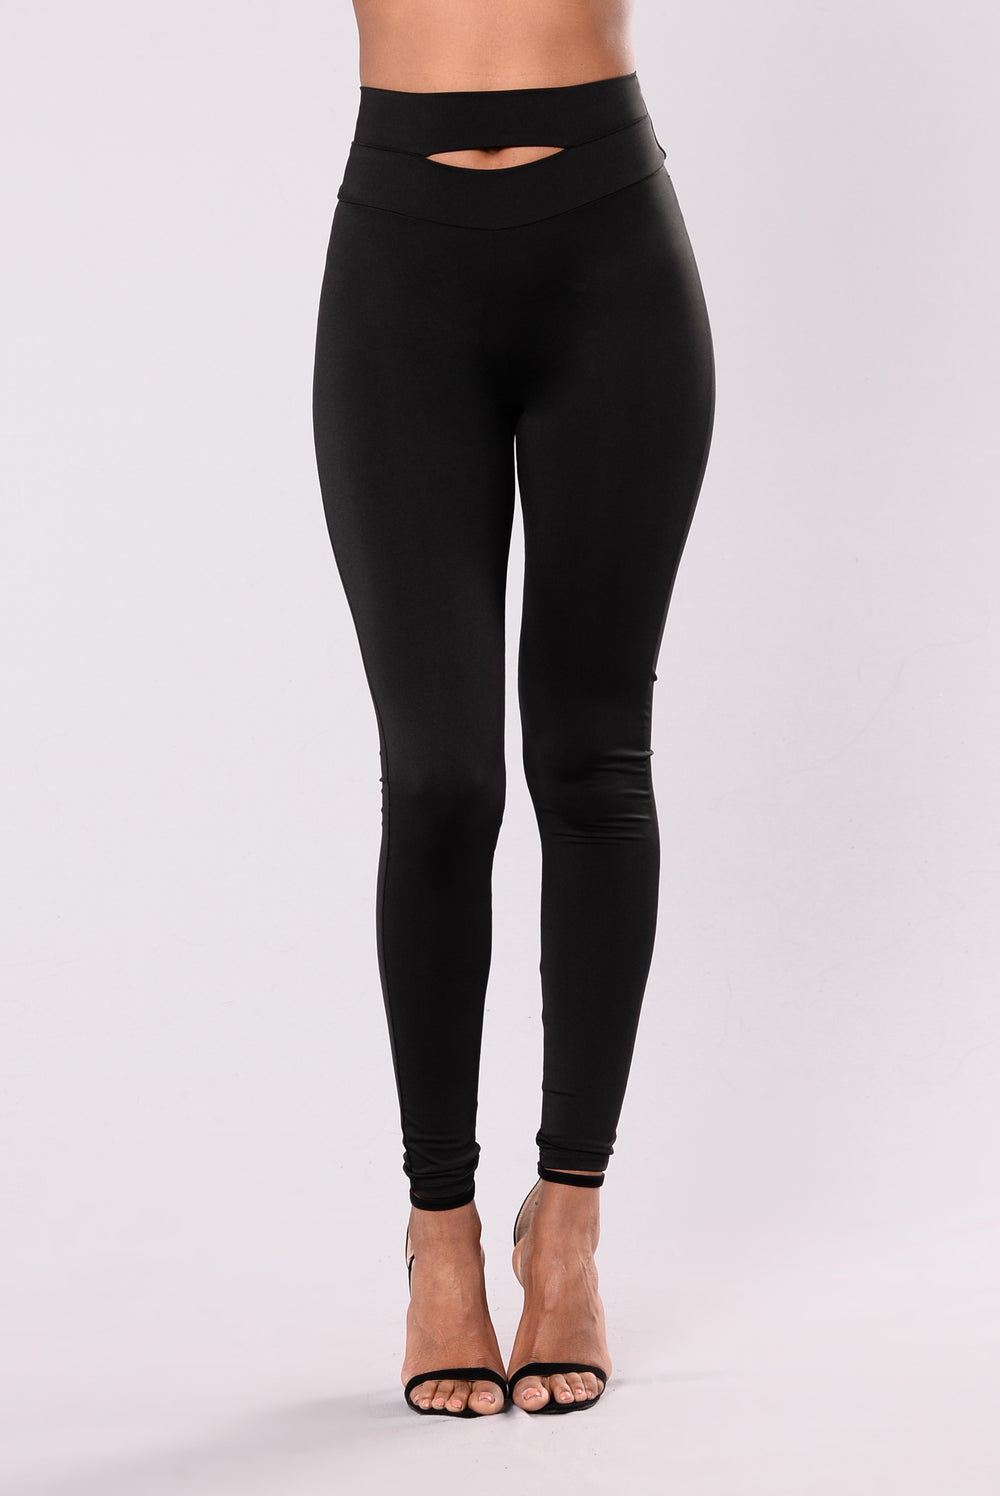 Mark My Words Leggings - Black